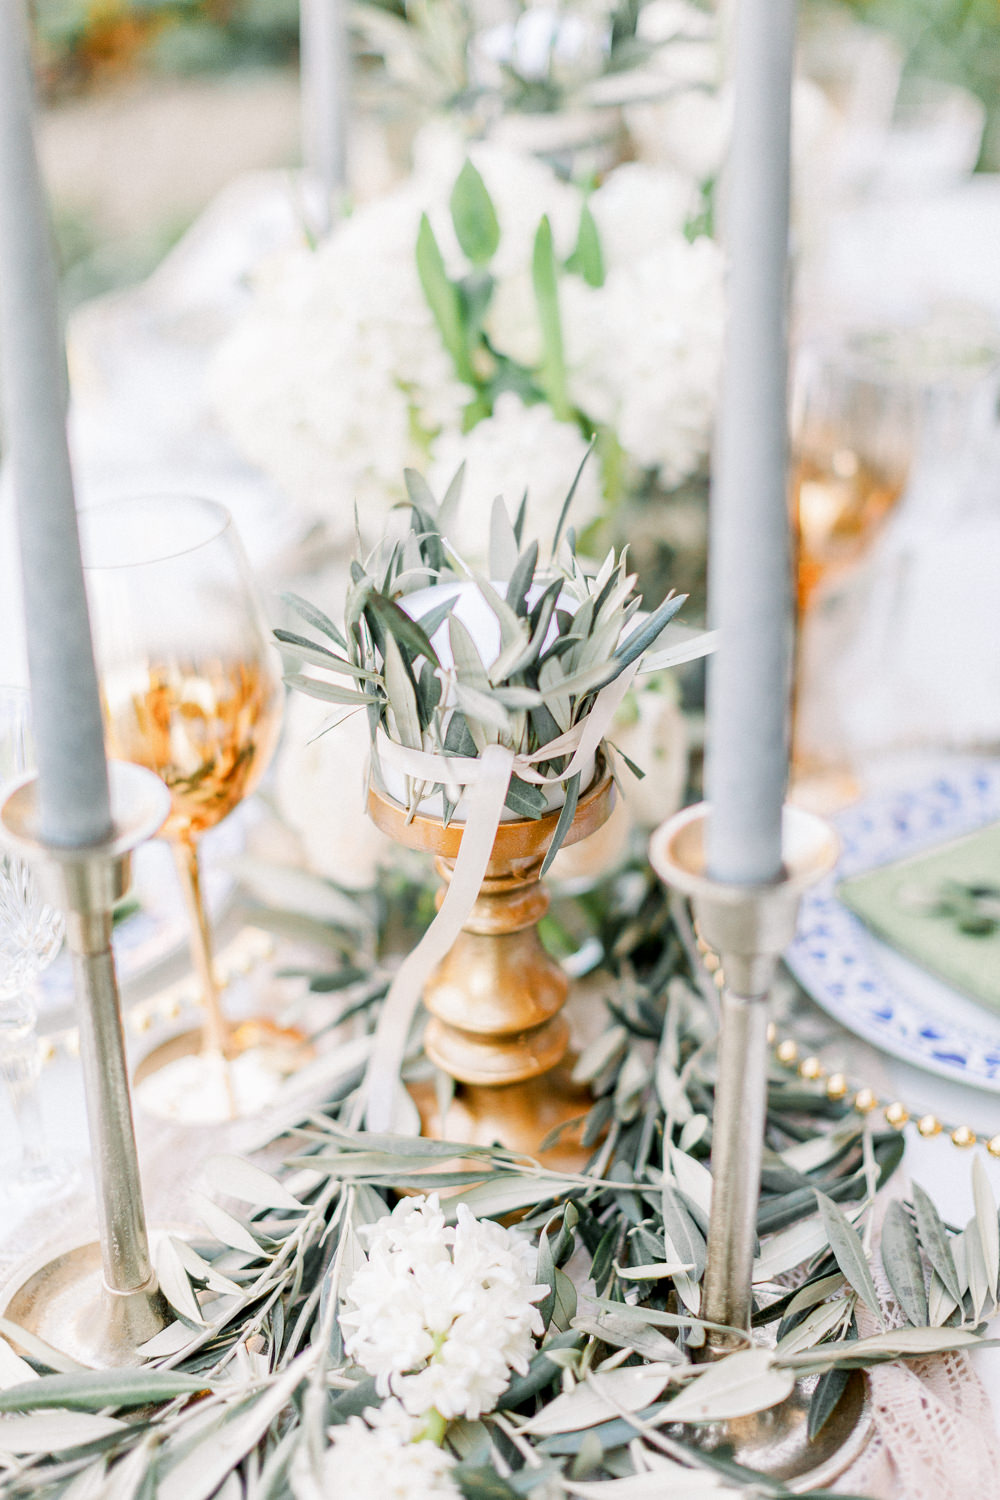 Tablescape Table Decor Grey Green Ivory Greenery Runner Candles Flowers Romantic Tuscany Wedding Ideas Sonya Lalla Photography